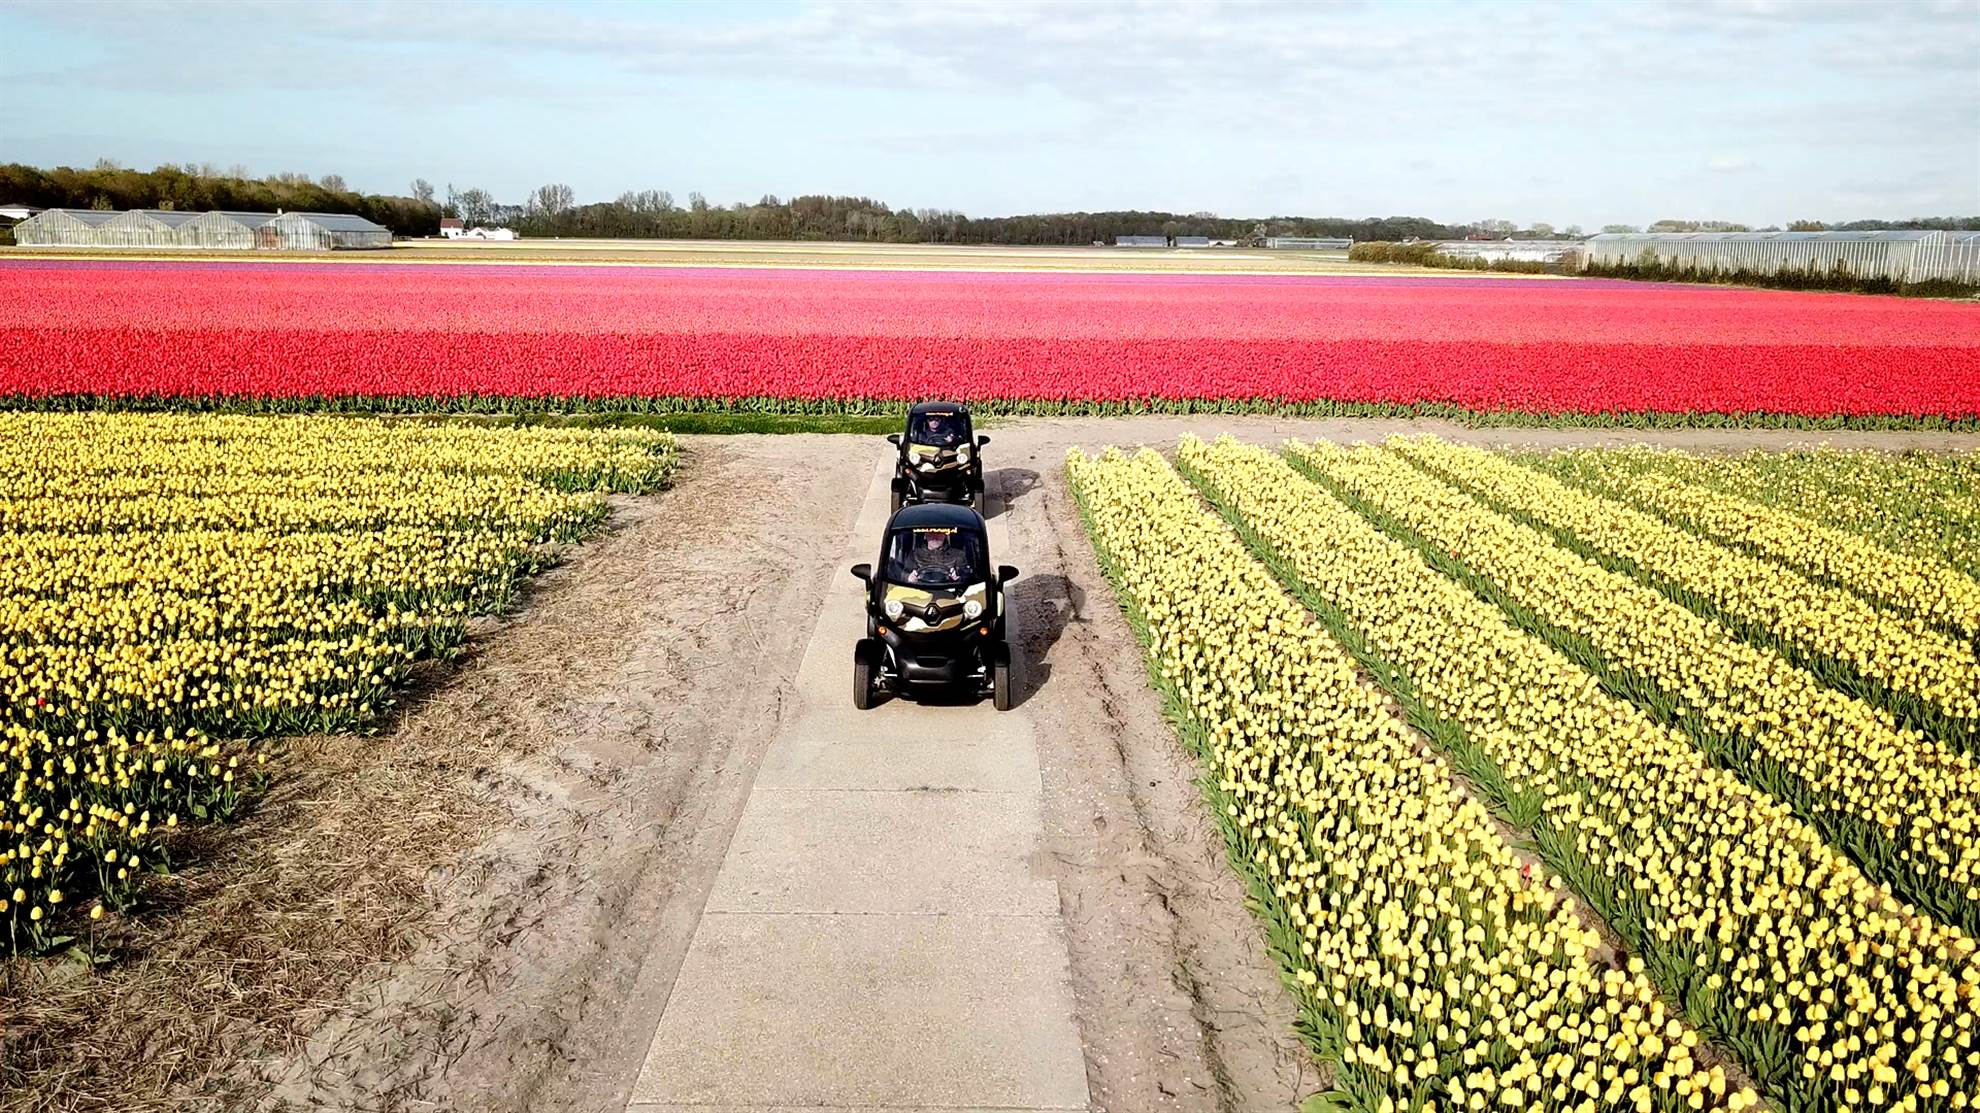 Flowerfield Experience with Electric Vehicle - GPS and Audioguide